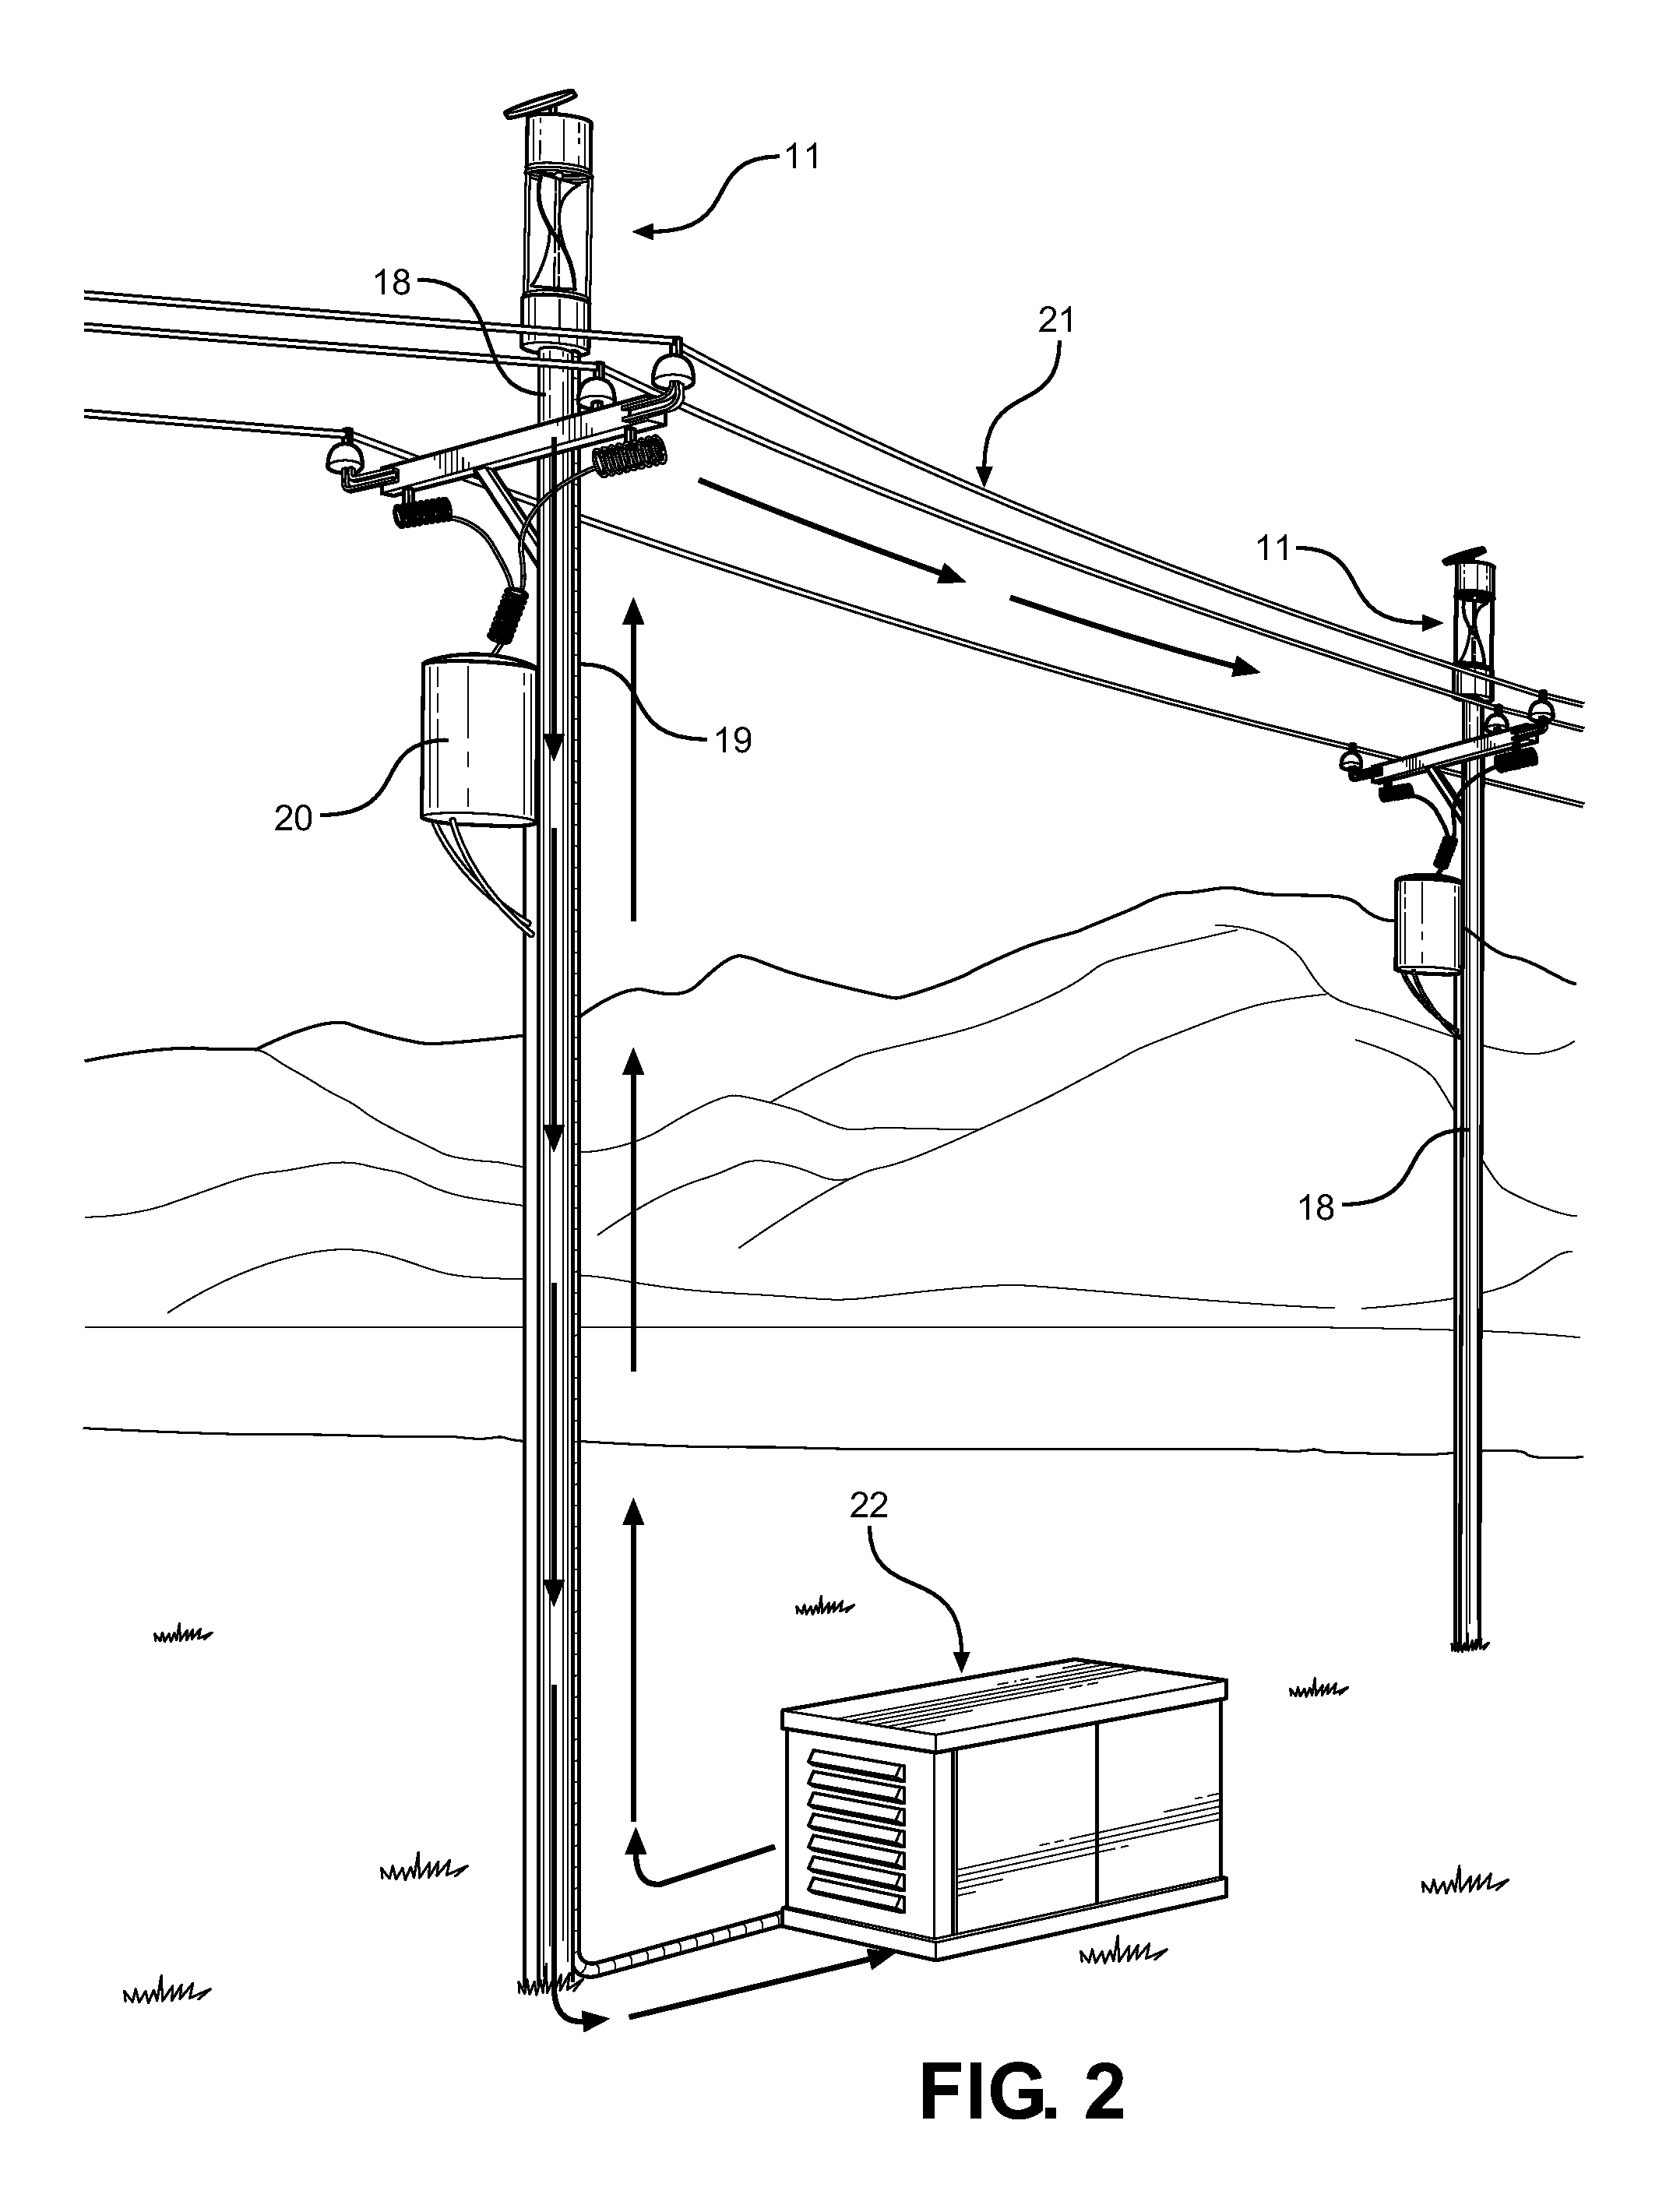 Drawn power line electricity pole Power Microgenerator Device US20120302228 Drawing